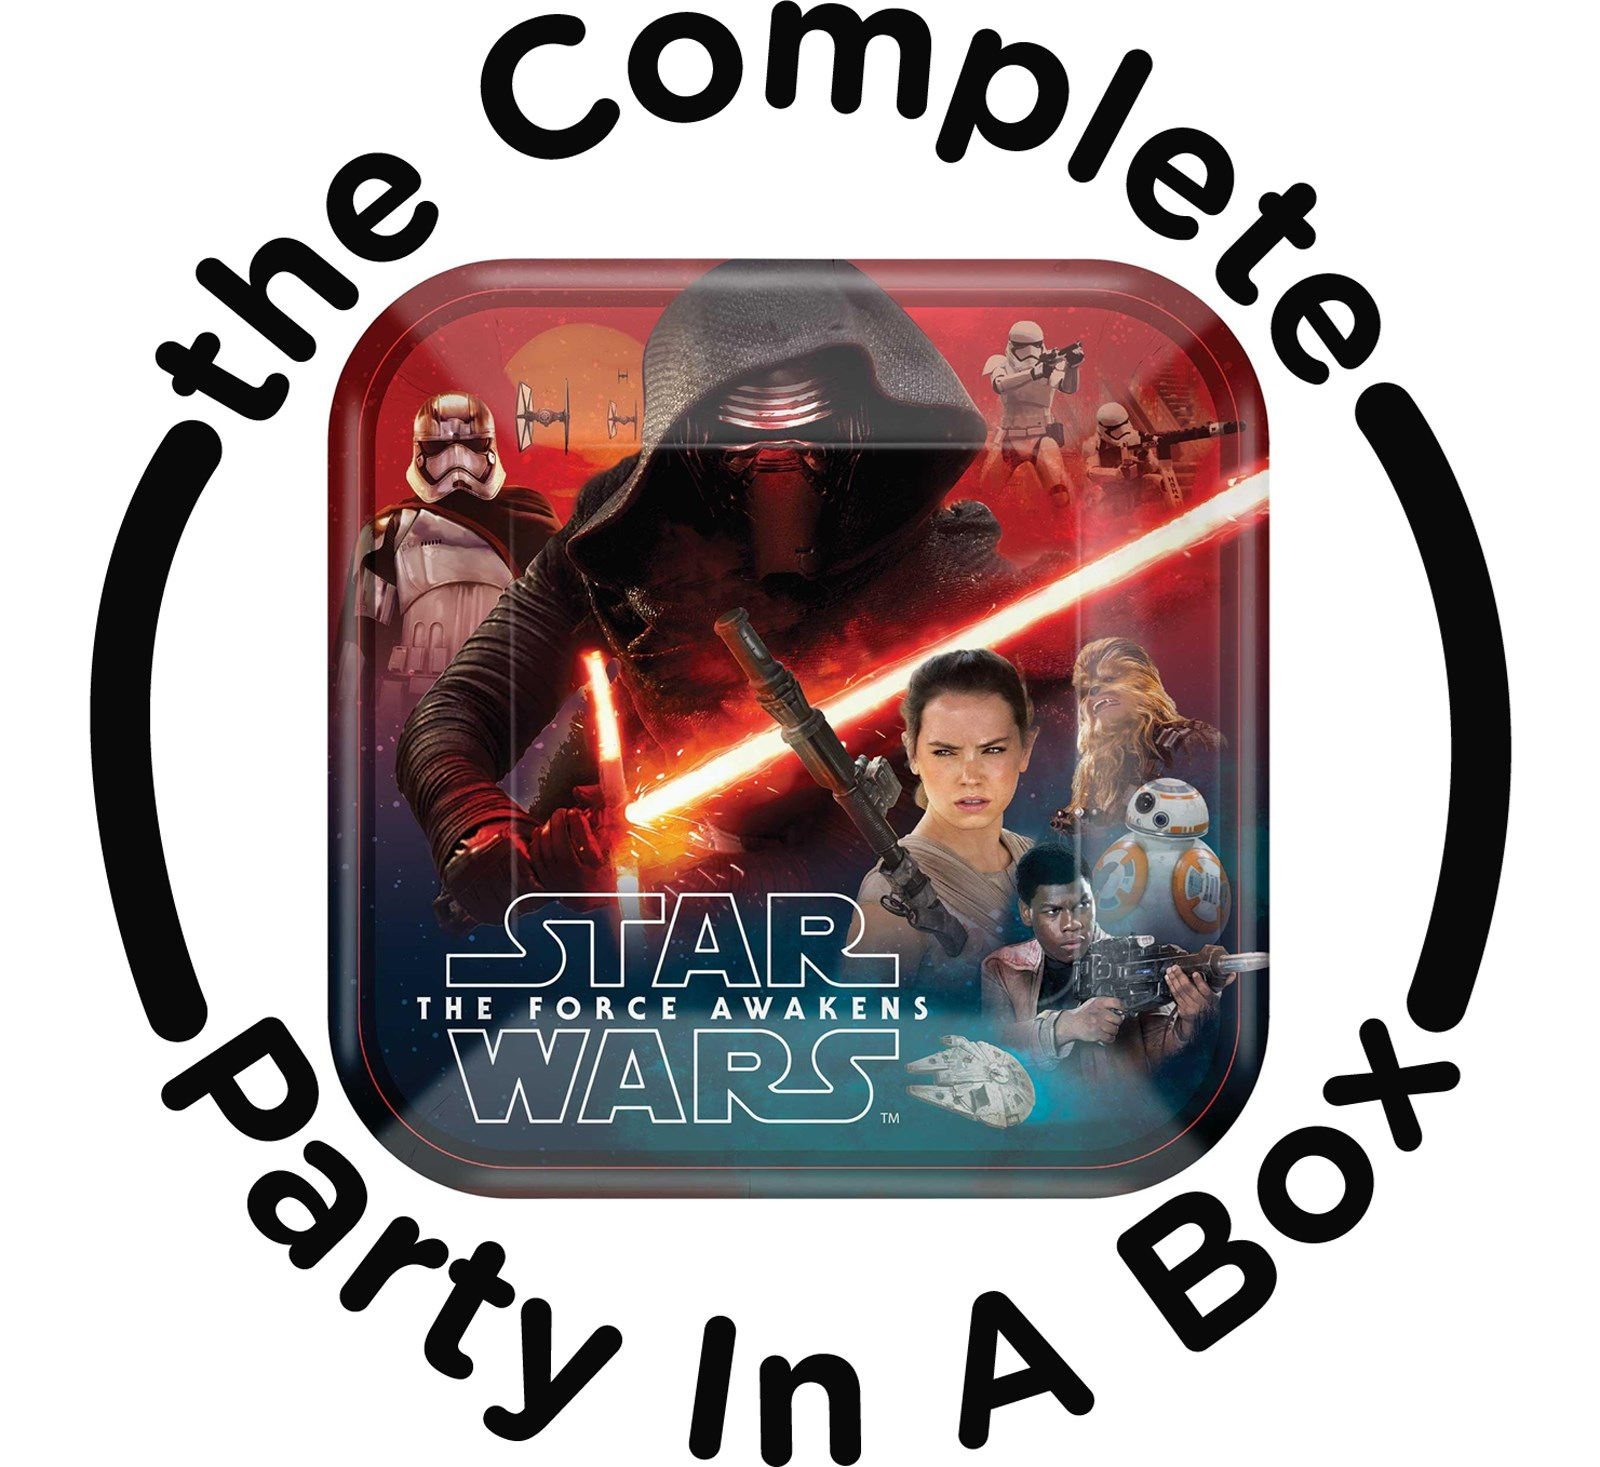 Star Wars The Force Awakens Party in a Box